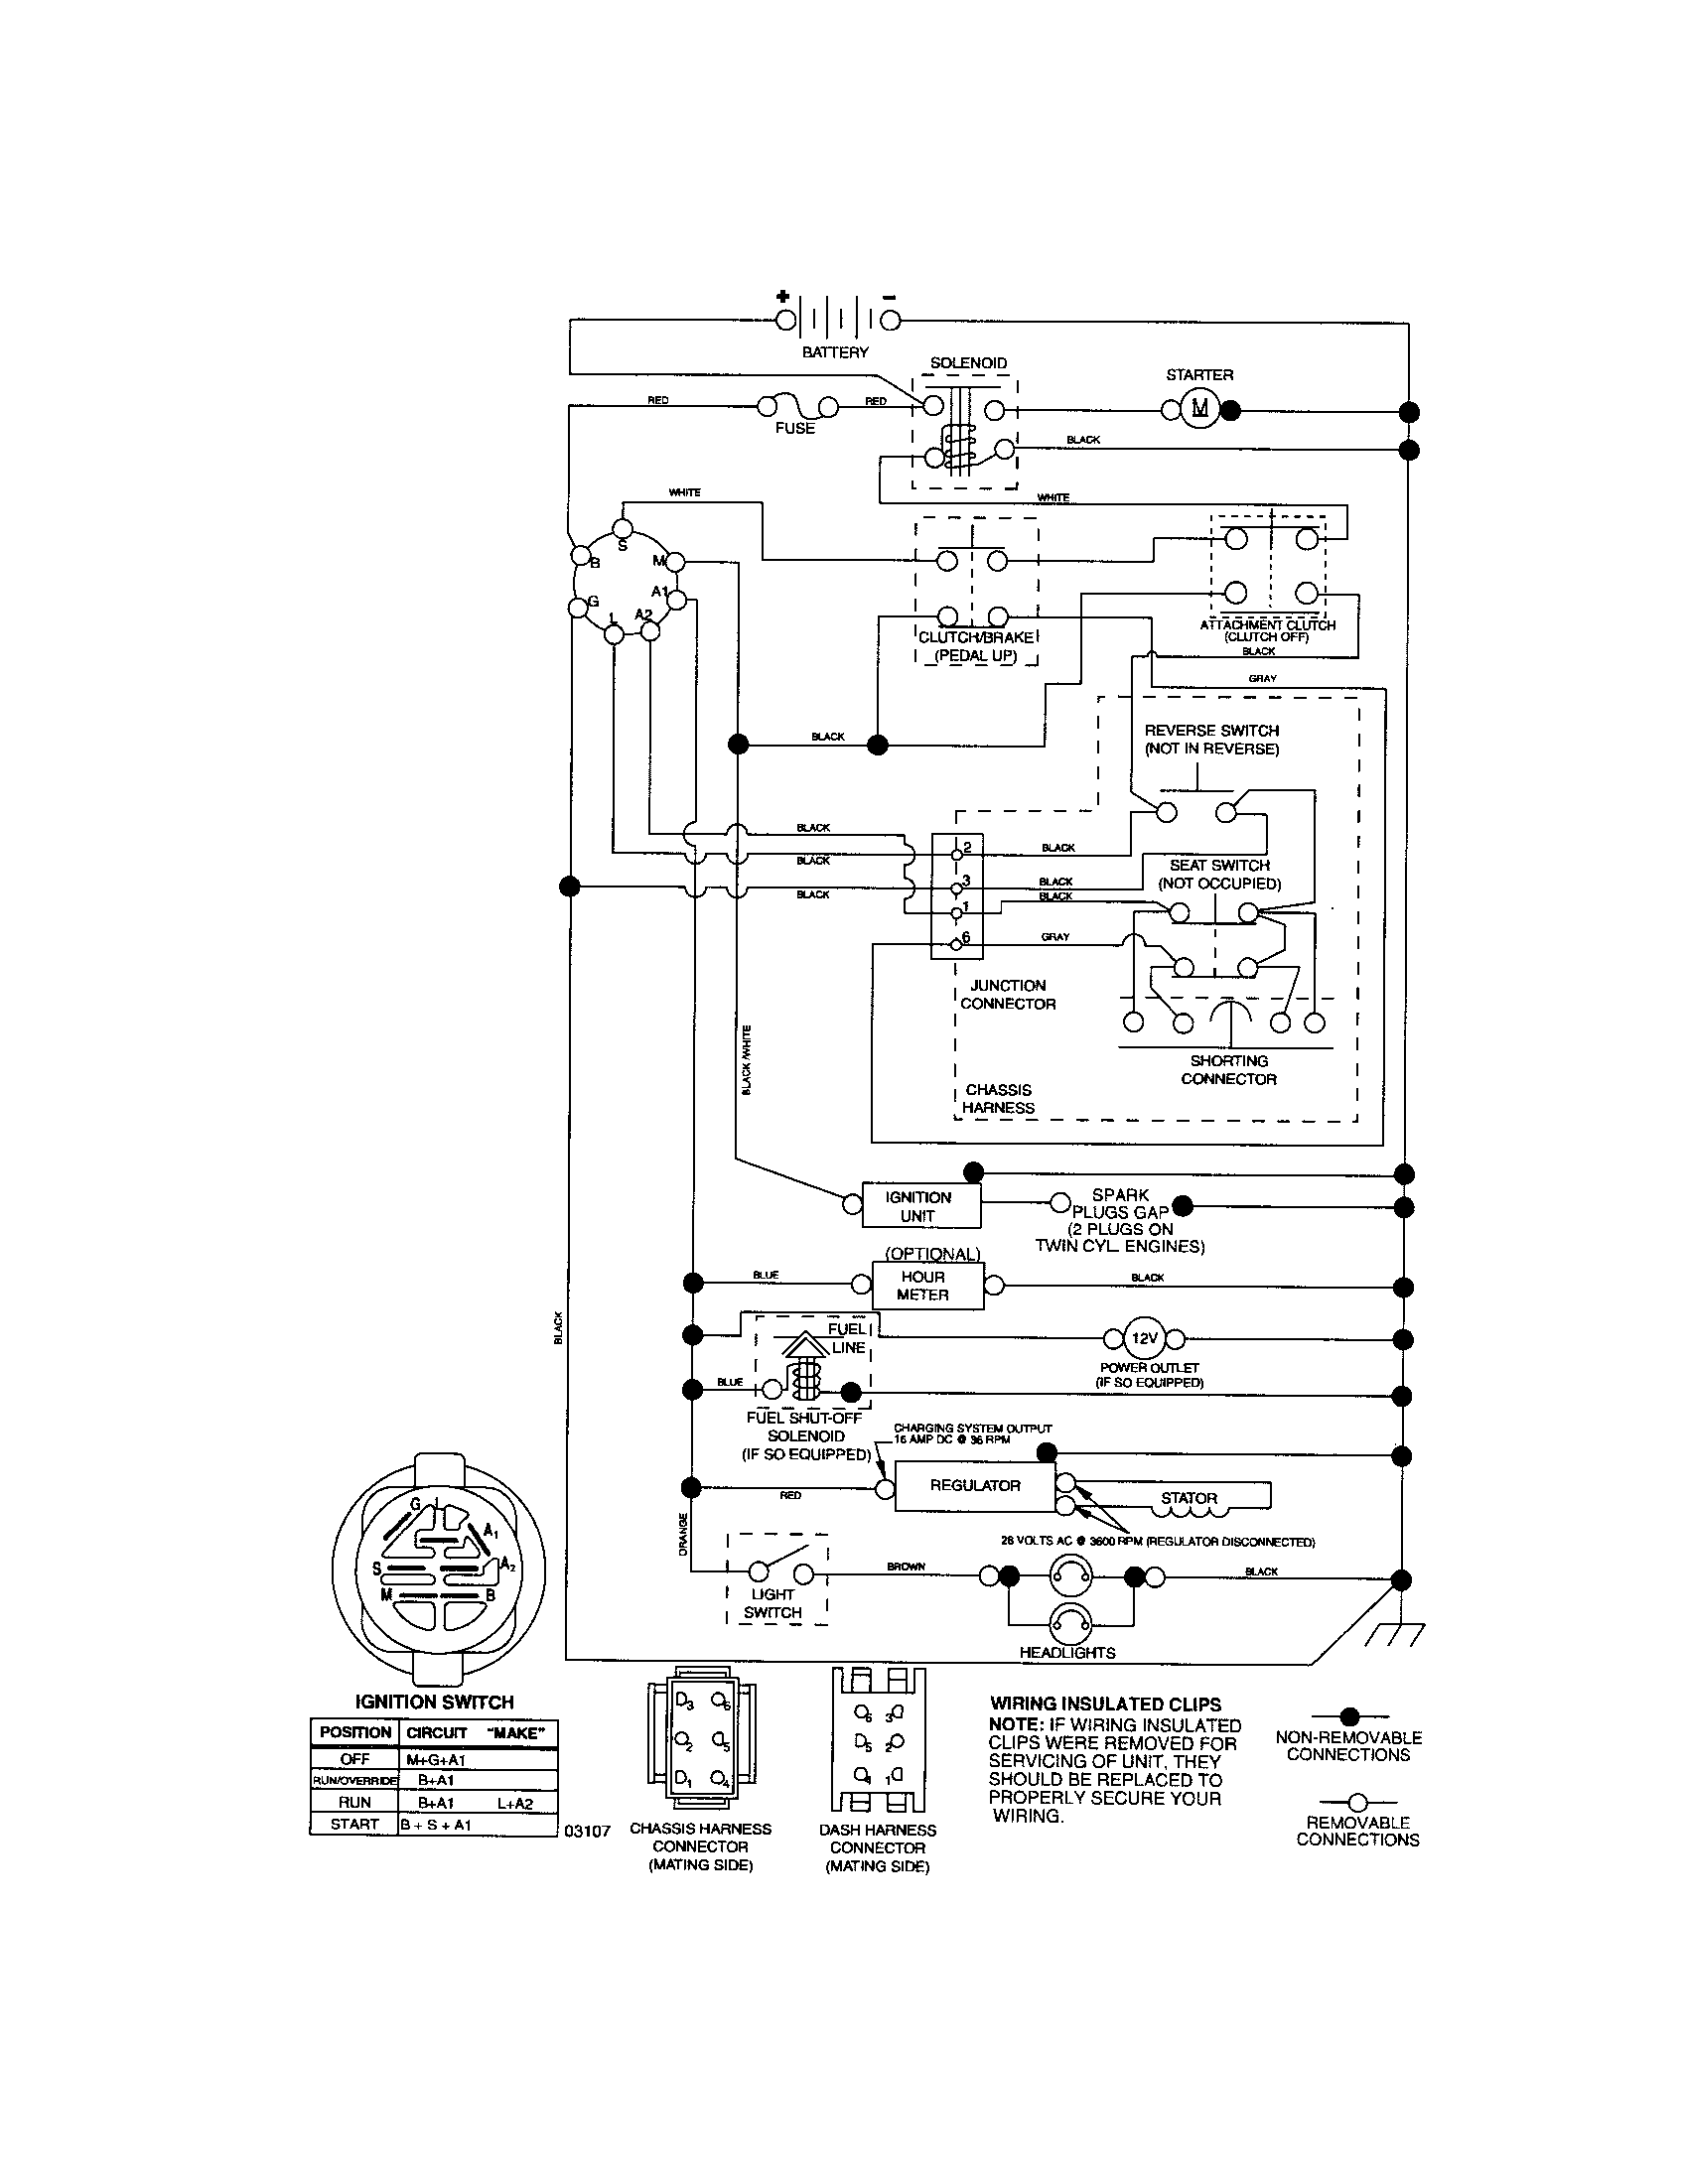 craftsman riding mower electrical diagram wiring diagram craftsman craftsman garage door opener wiring schematic craftsman riding [ 1696 x 2200 Pixel ]